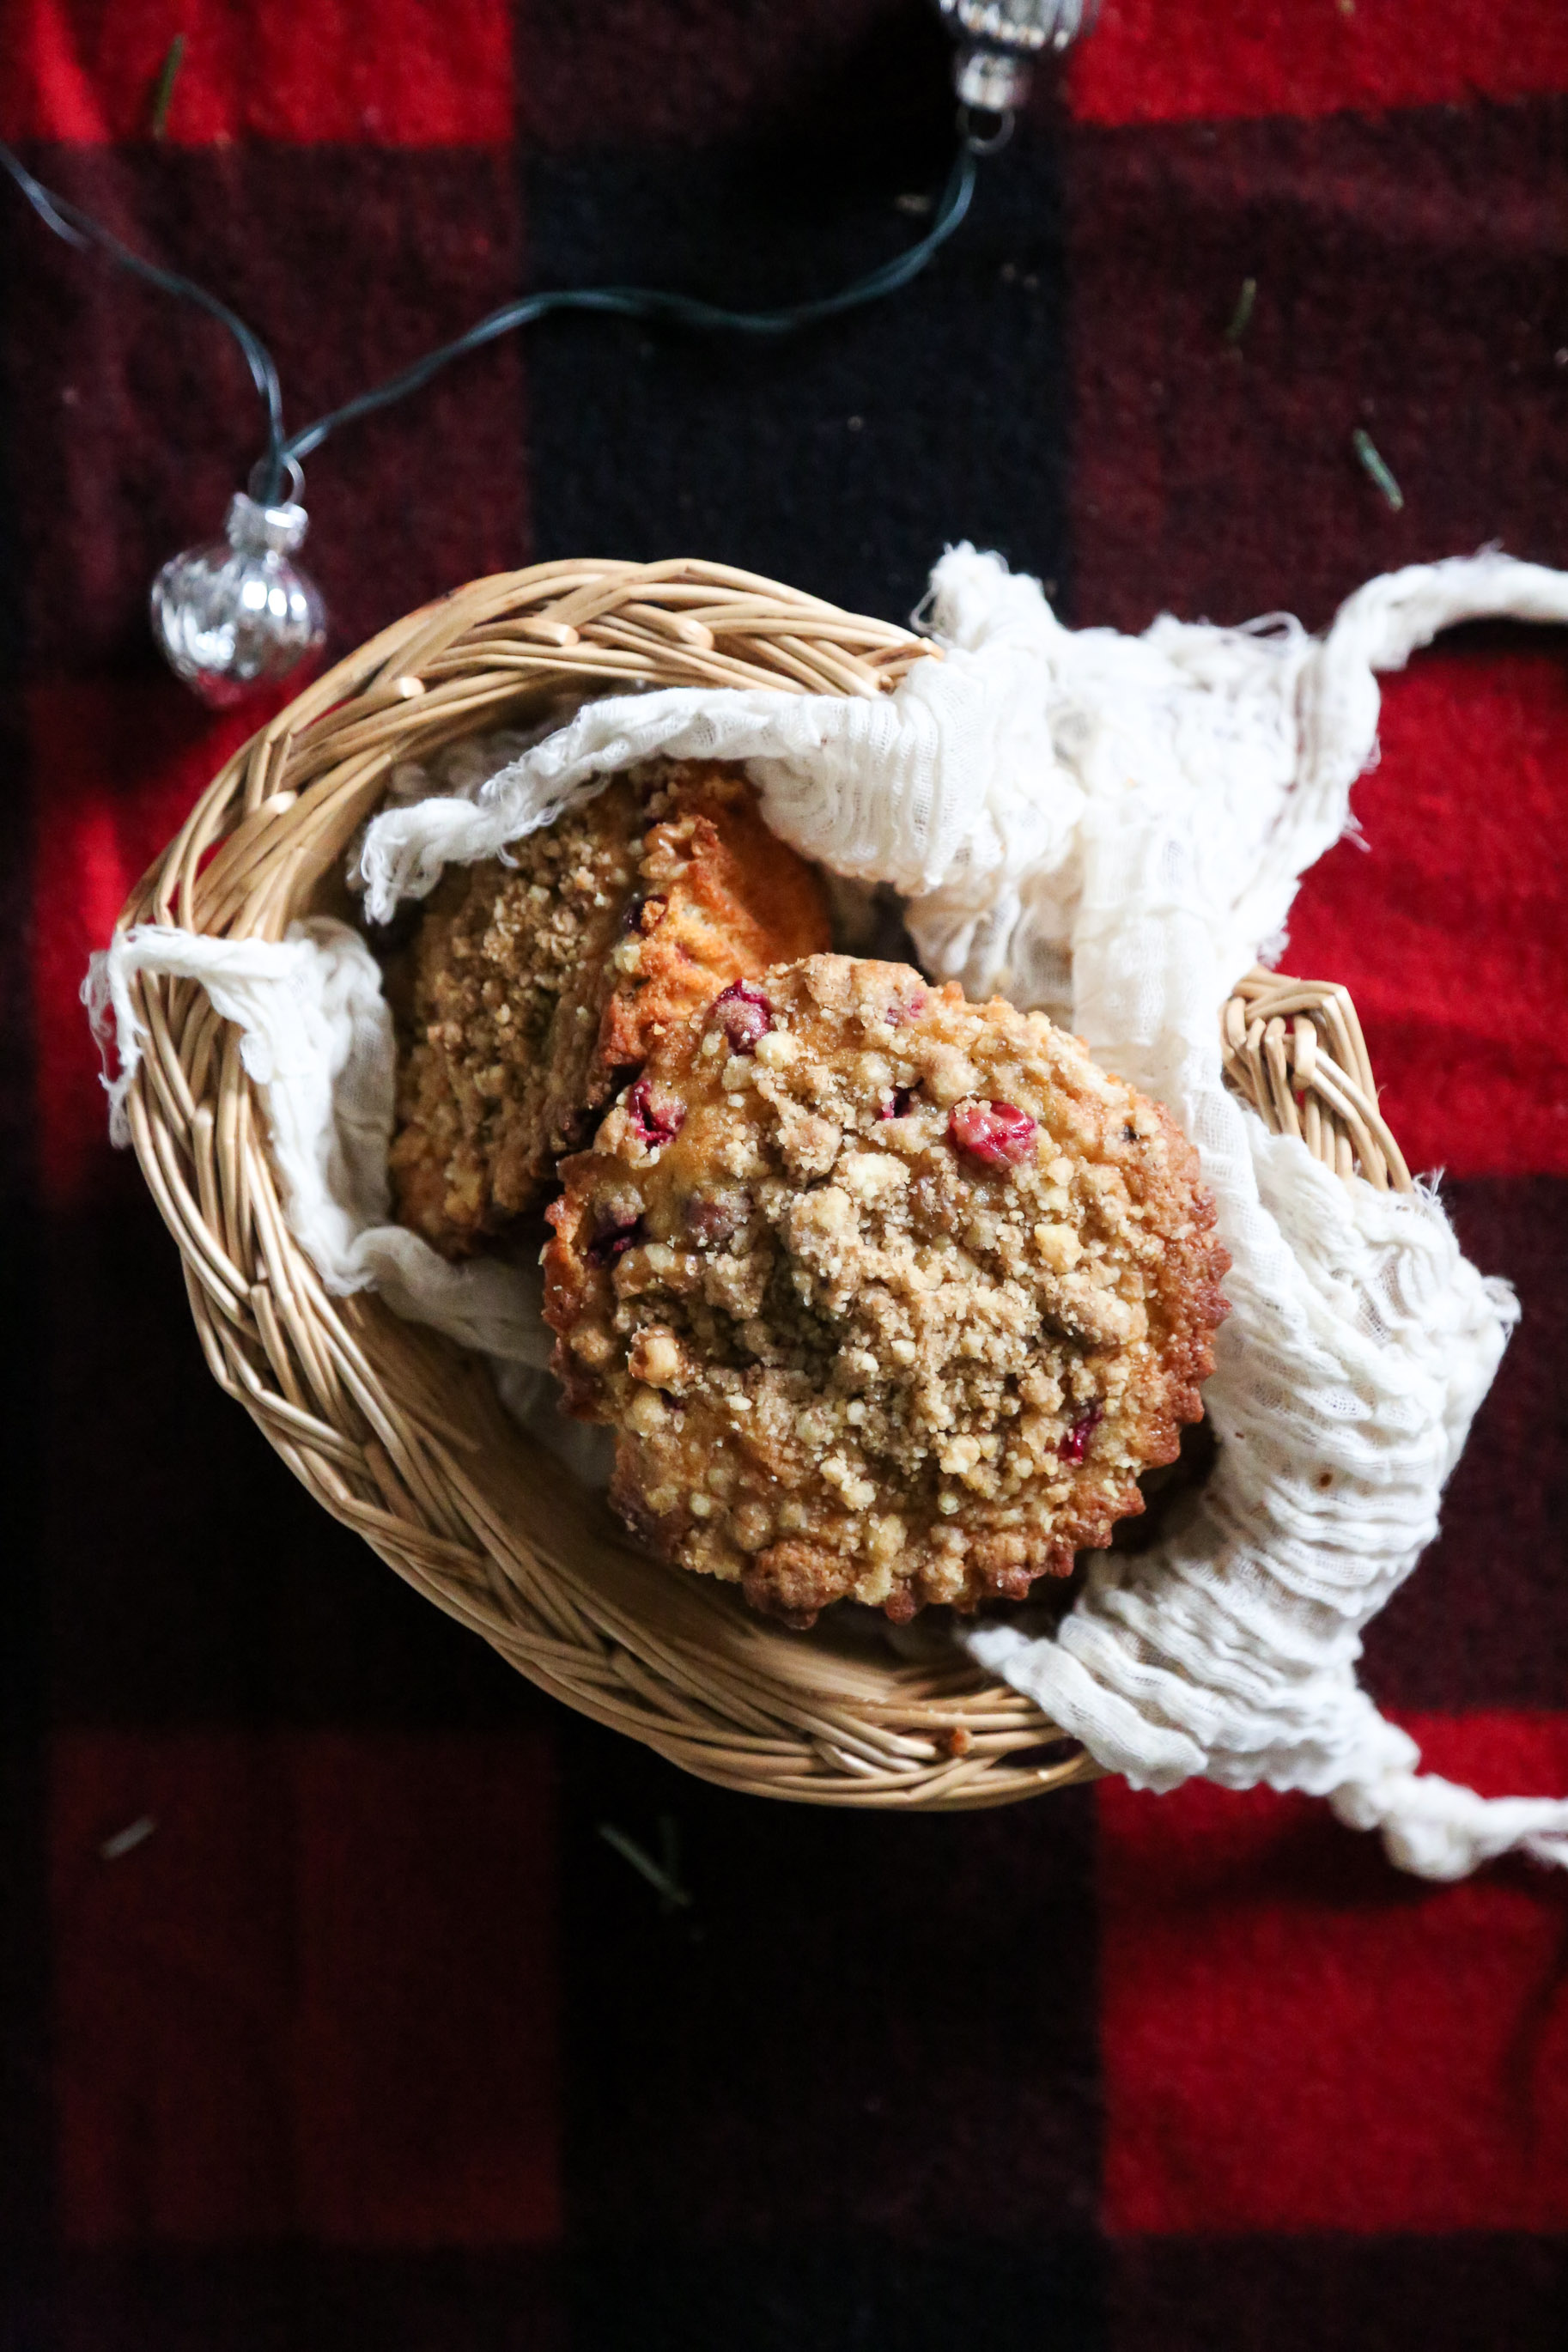 CRANBERRY OLIVE OIL MUFFINS WITH WALNUT CRUMB TOPPING - yields 6 large muffins or 12 regular muffins